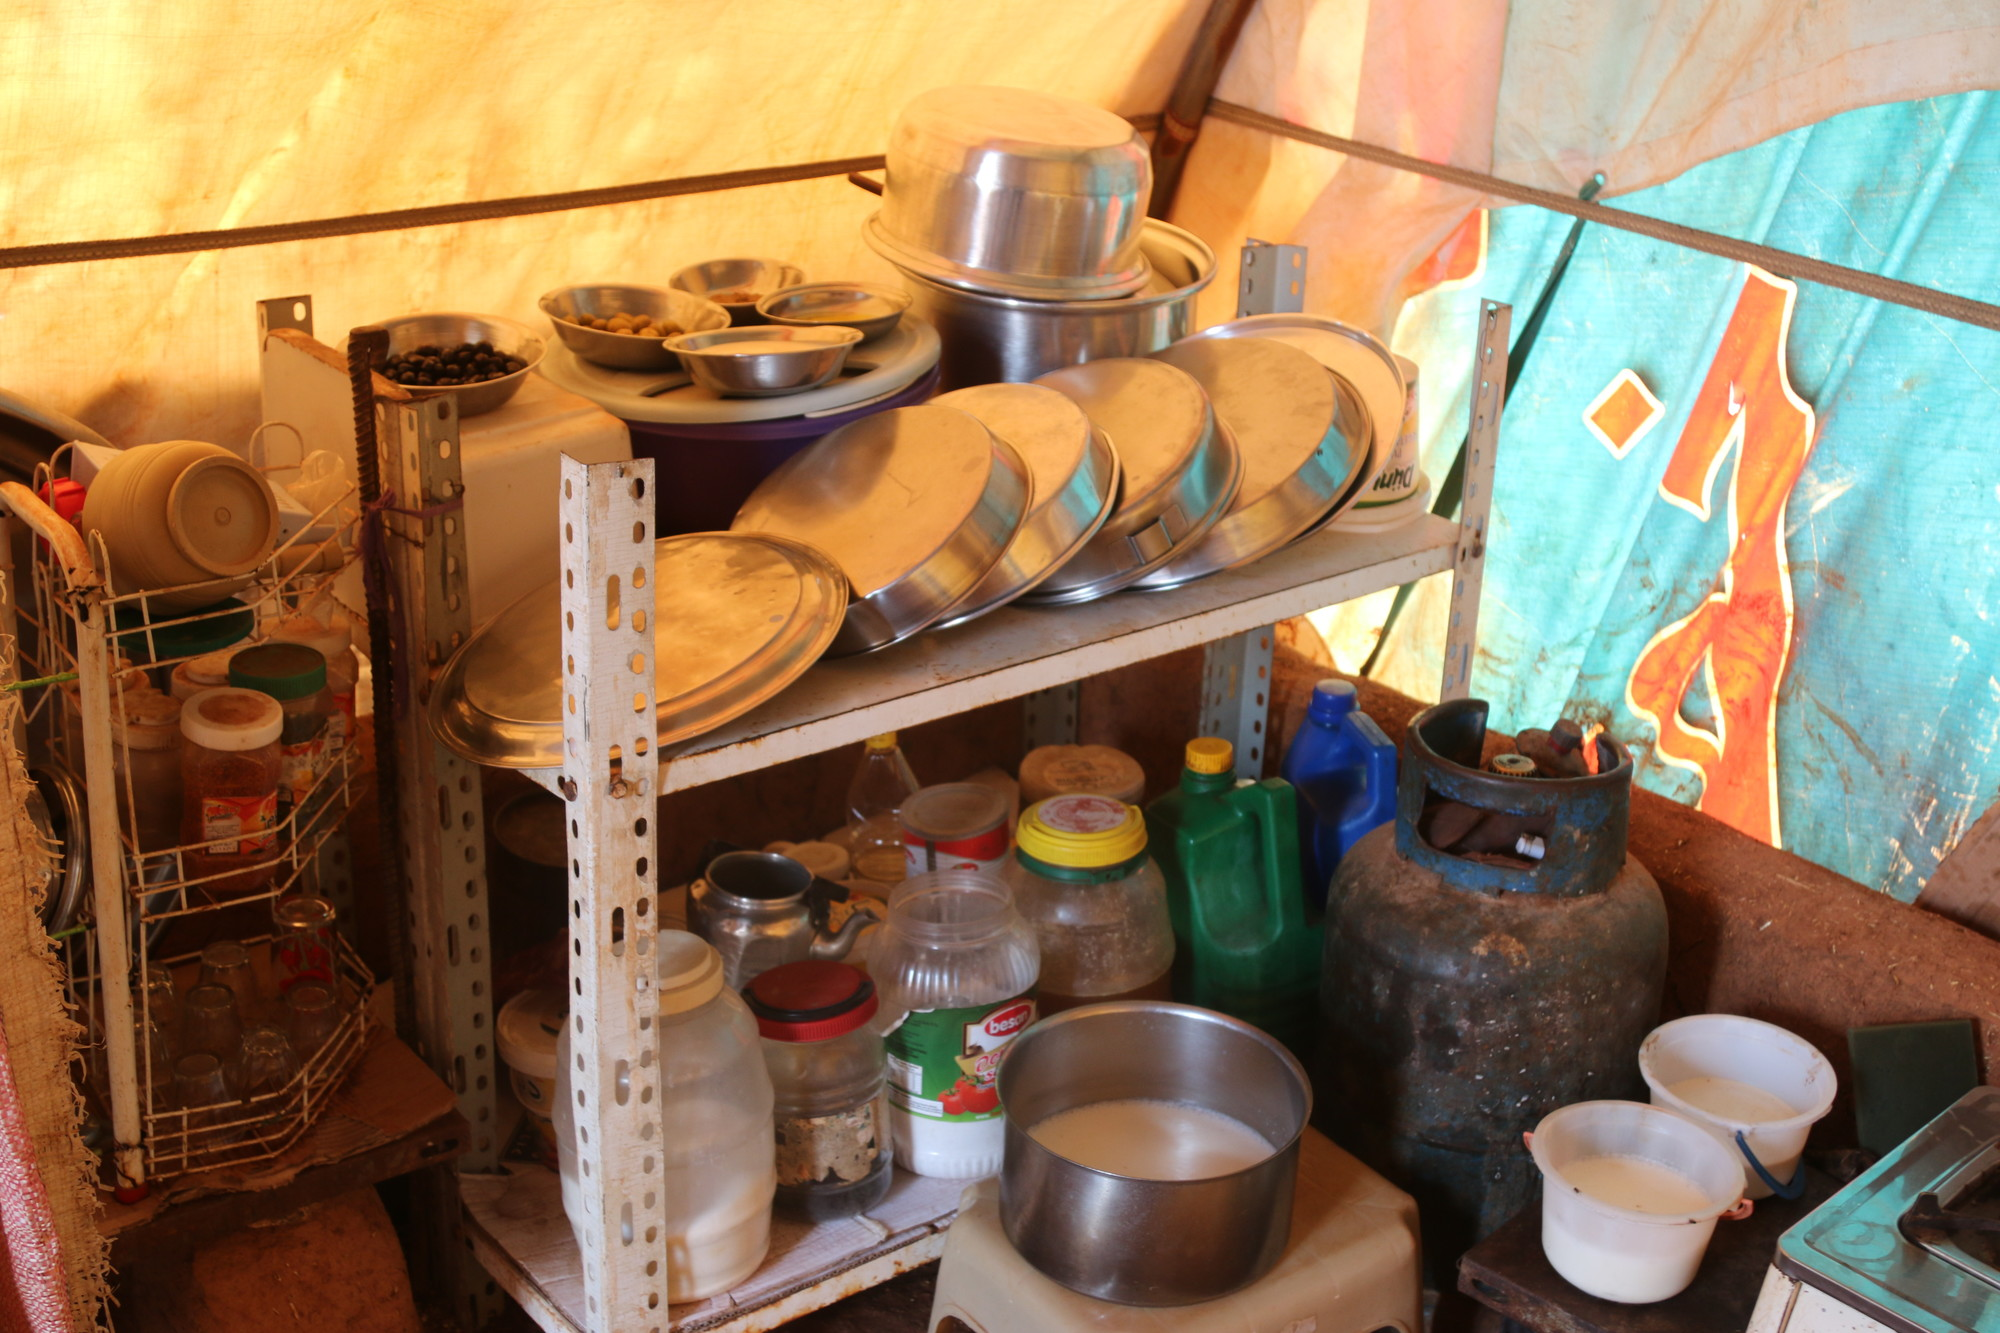 A few of the belongings in Amira's tent that are helping her family survive.